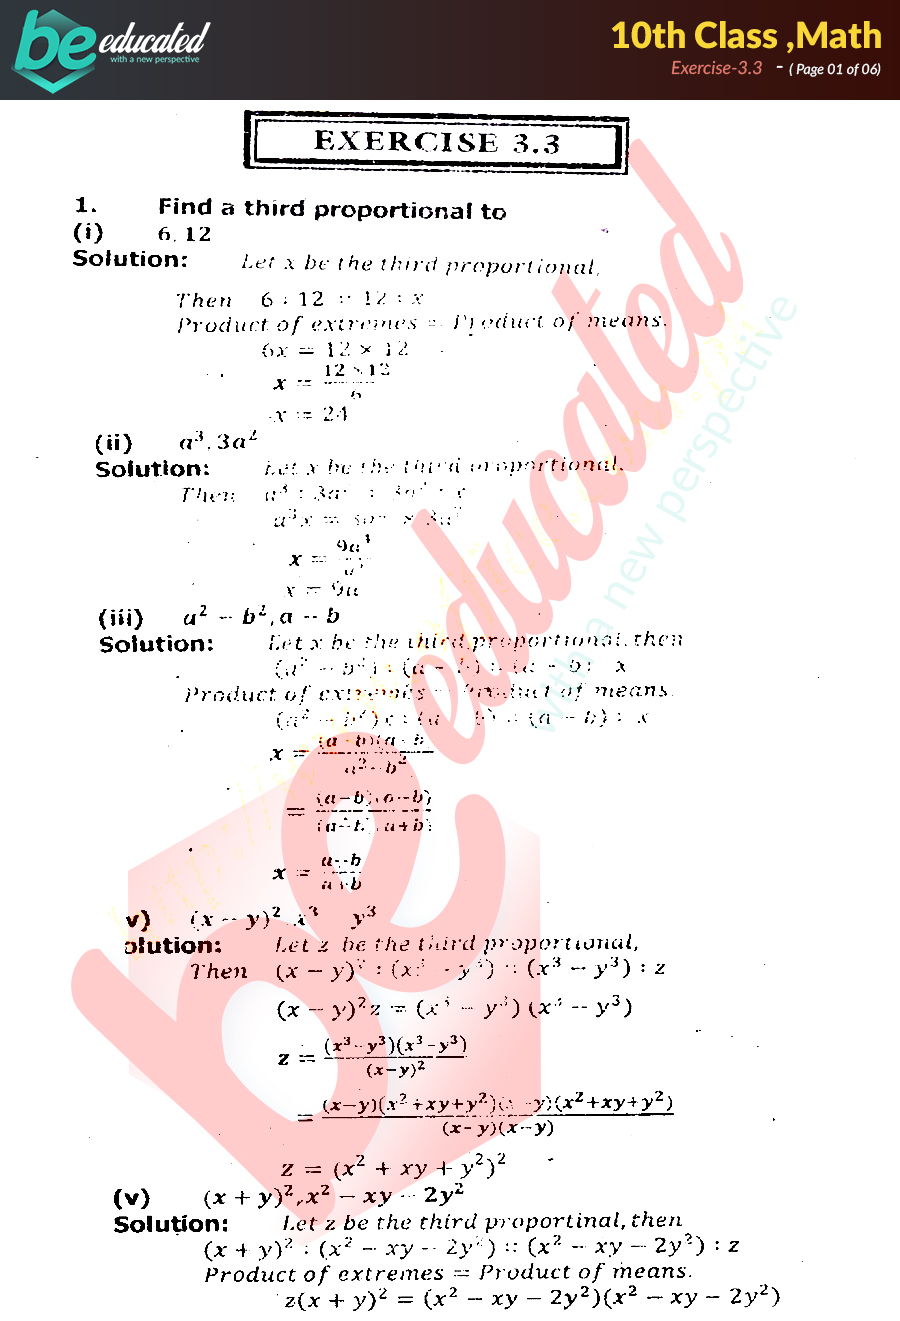 Exercise 3 3 Math 10th Class Notes - Matric Part 2 Notes